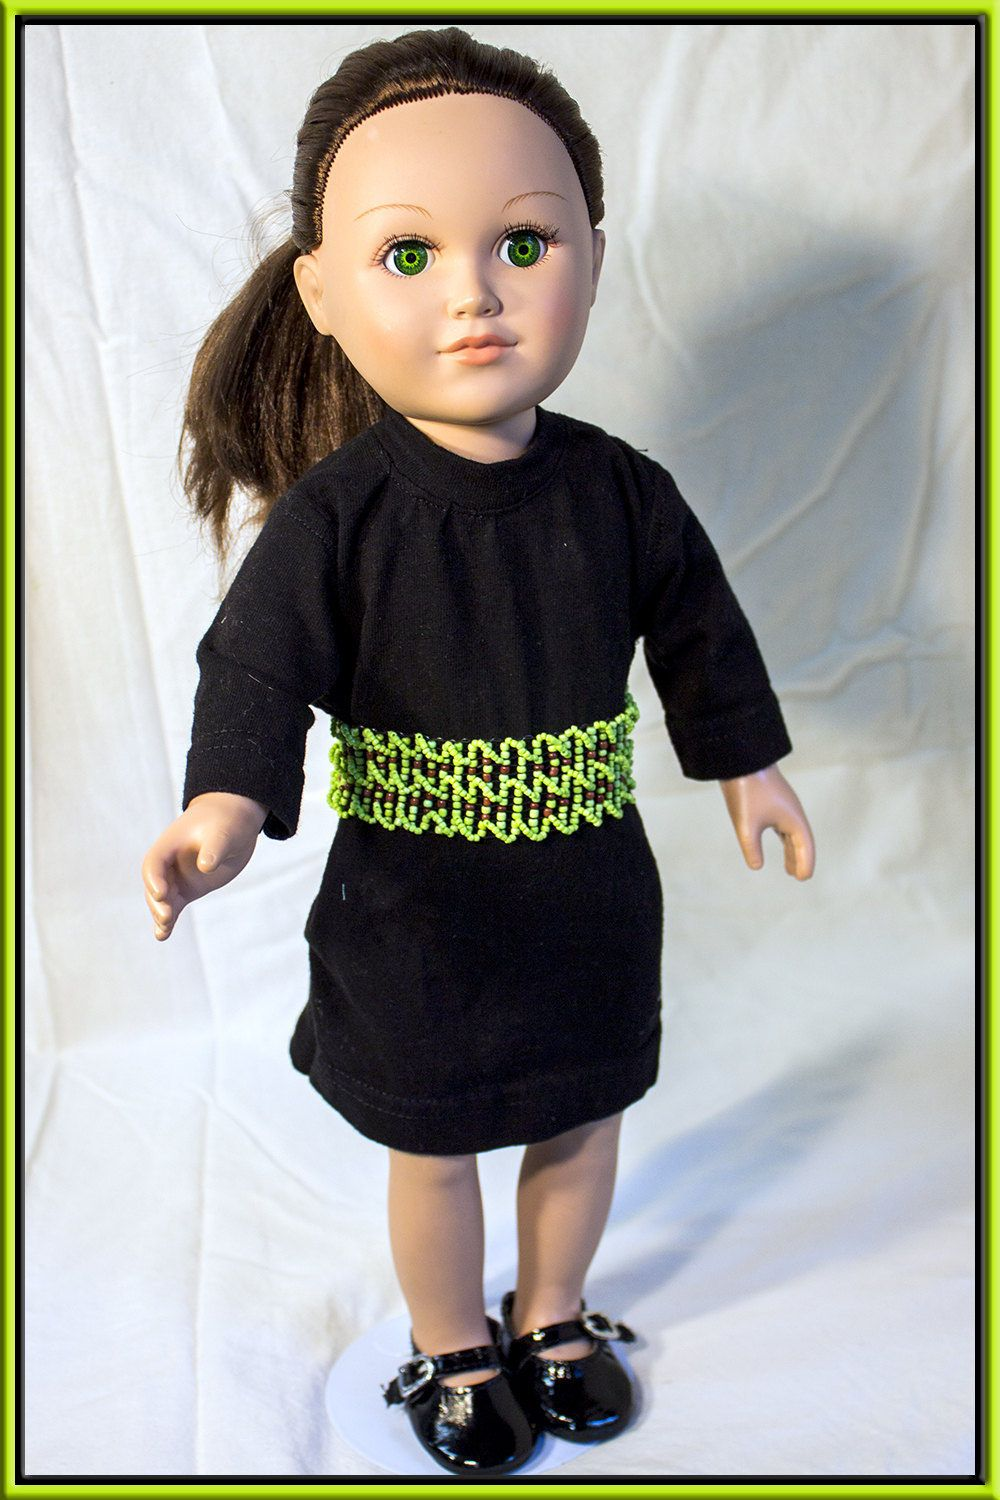 Black t shirt dress etsy - American Made Girl Doll Clothes Black T Shirt Dress W Seed Bead Belt